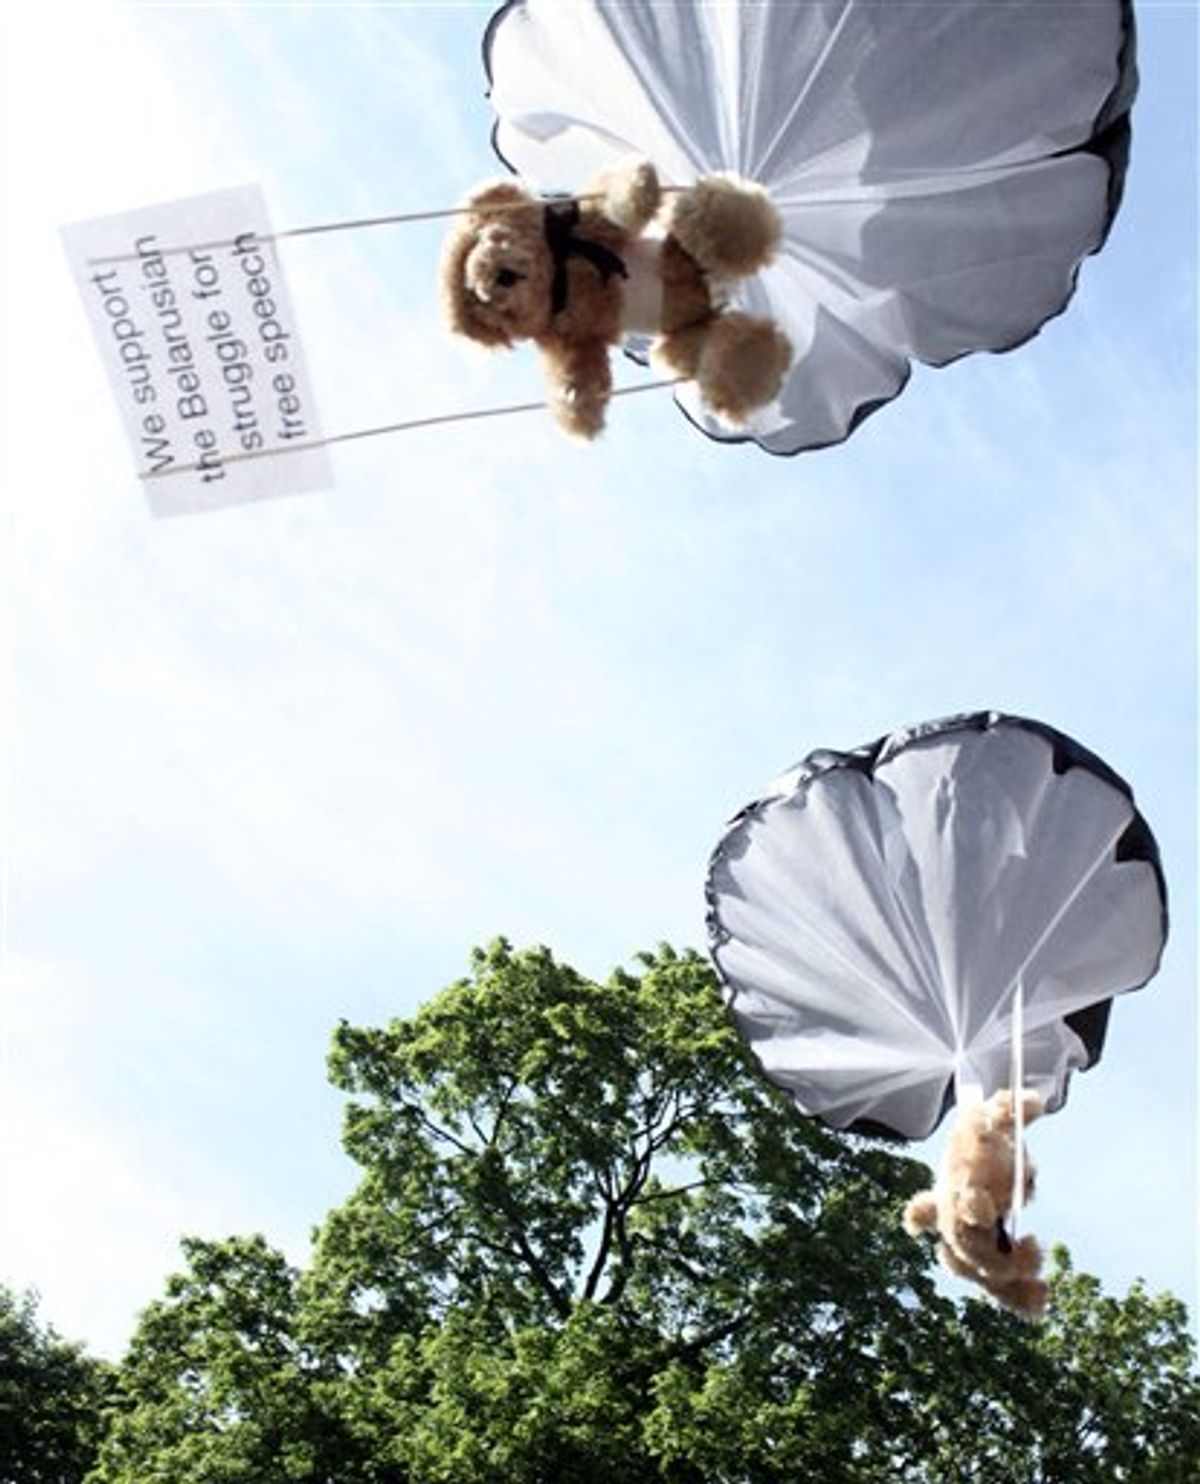 Studio Total teddy bears hang on parachutes during a training in Stockholm, Sweden. (AP/Studio Total/Per Cromwell)